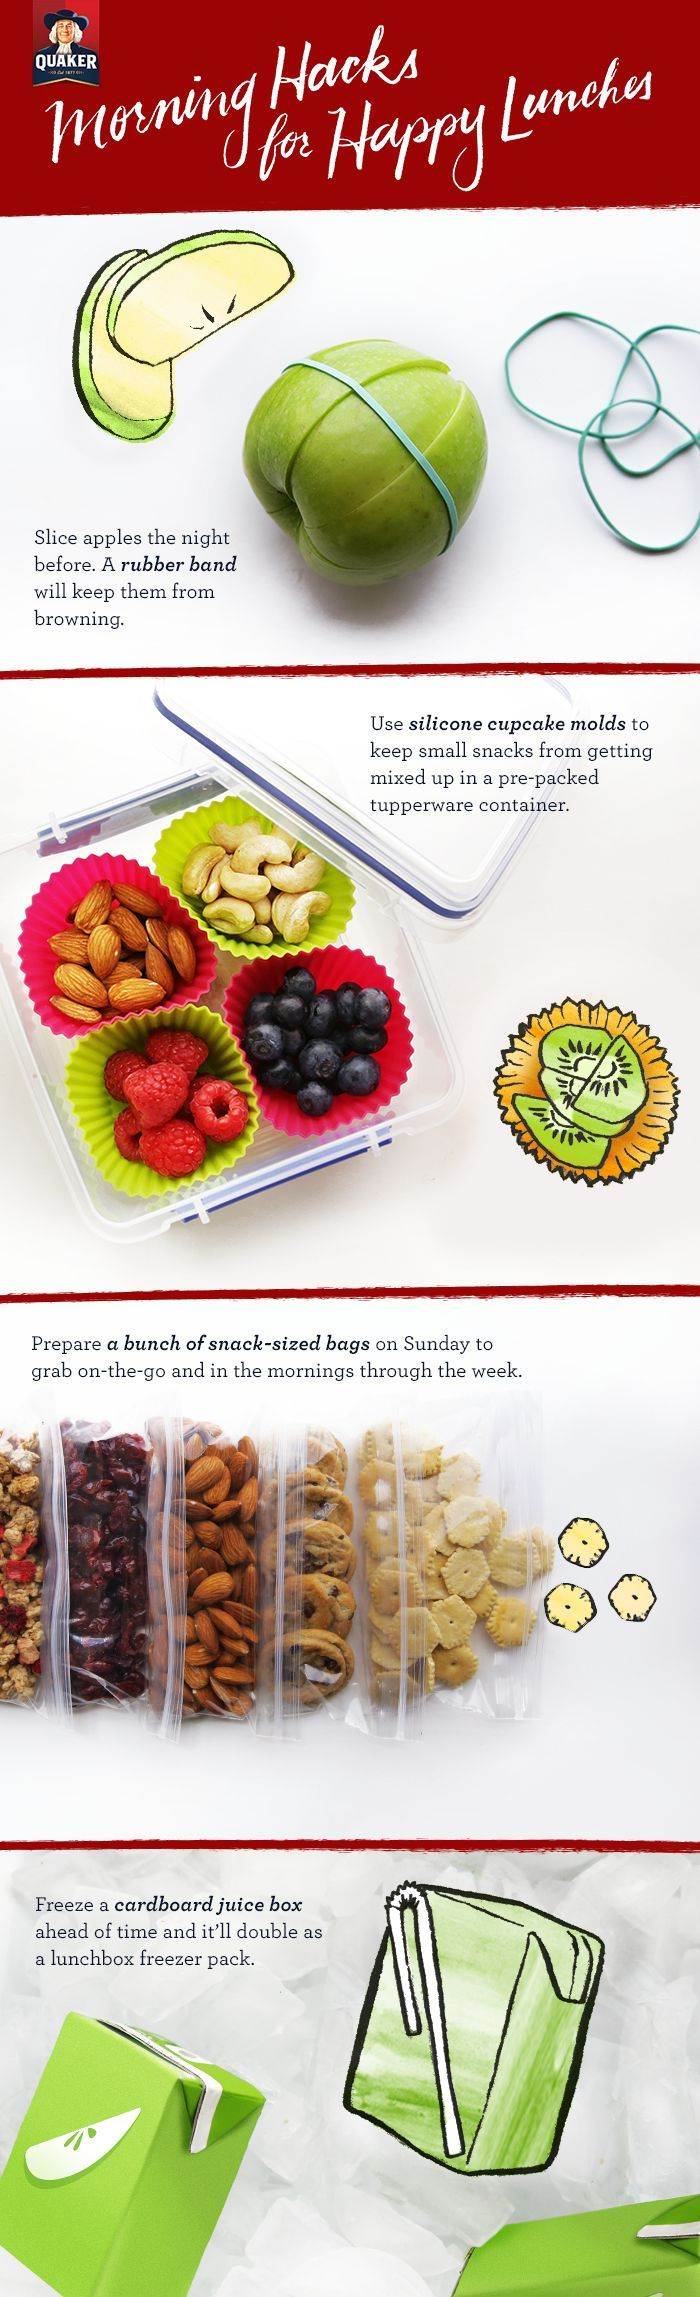 Don't save lunchtime preparation for the day of! These simple make-ahead solutions help bring the fun and ease back into your morning routine while also making sure everyone in the family gets the tasty, nutritious lunch they deserve.